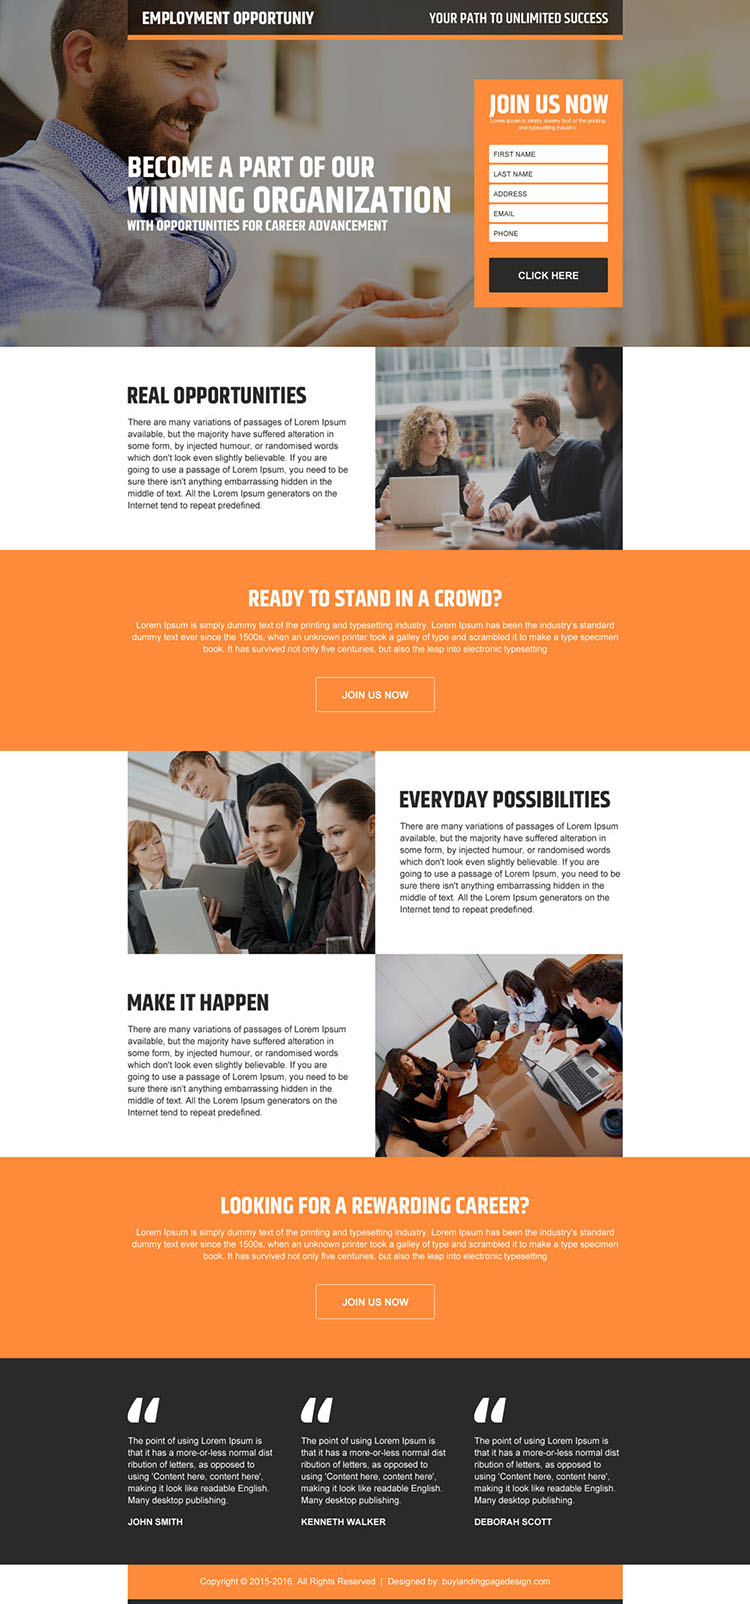 real employment opportunity responsive landing page design